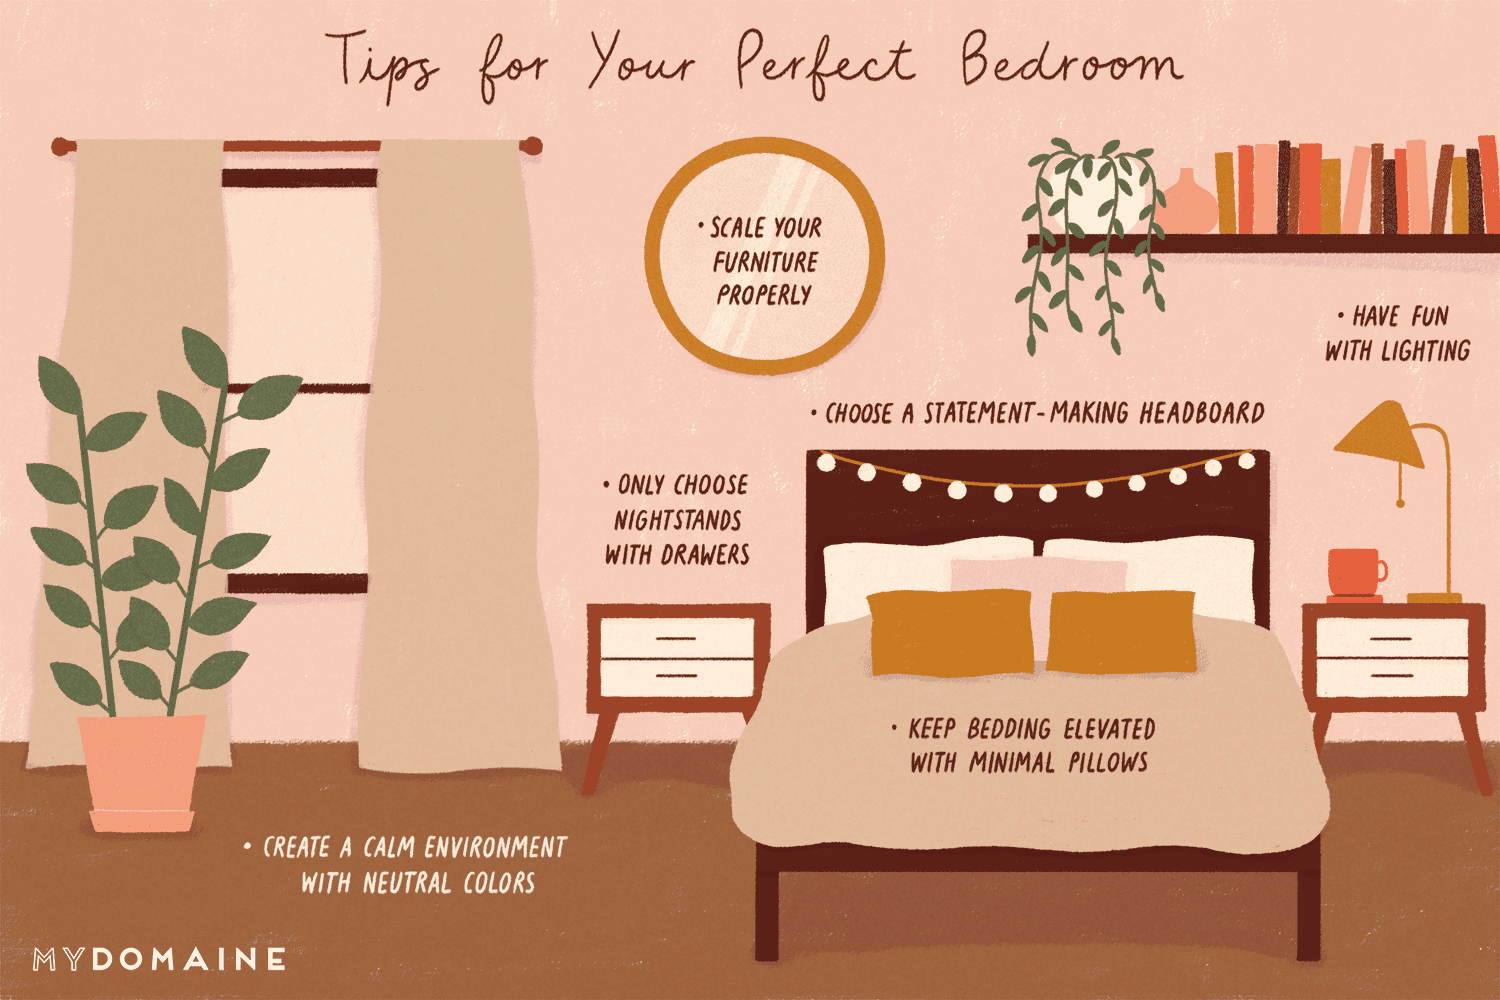 9 Bedroom Decorating Mistakes Interior